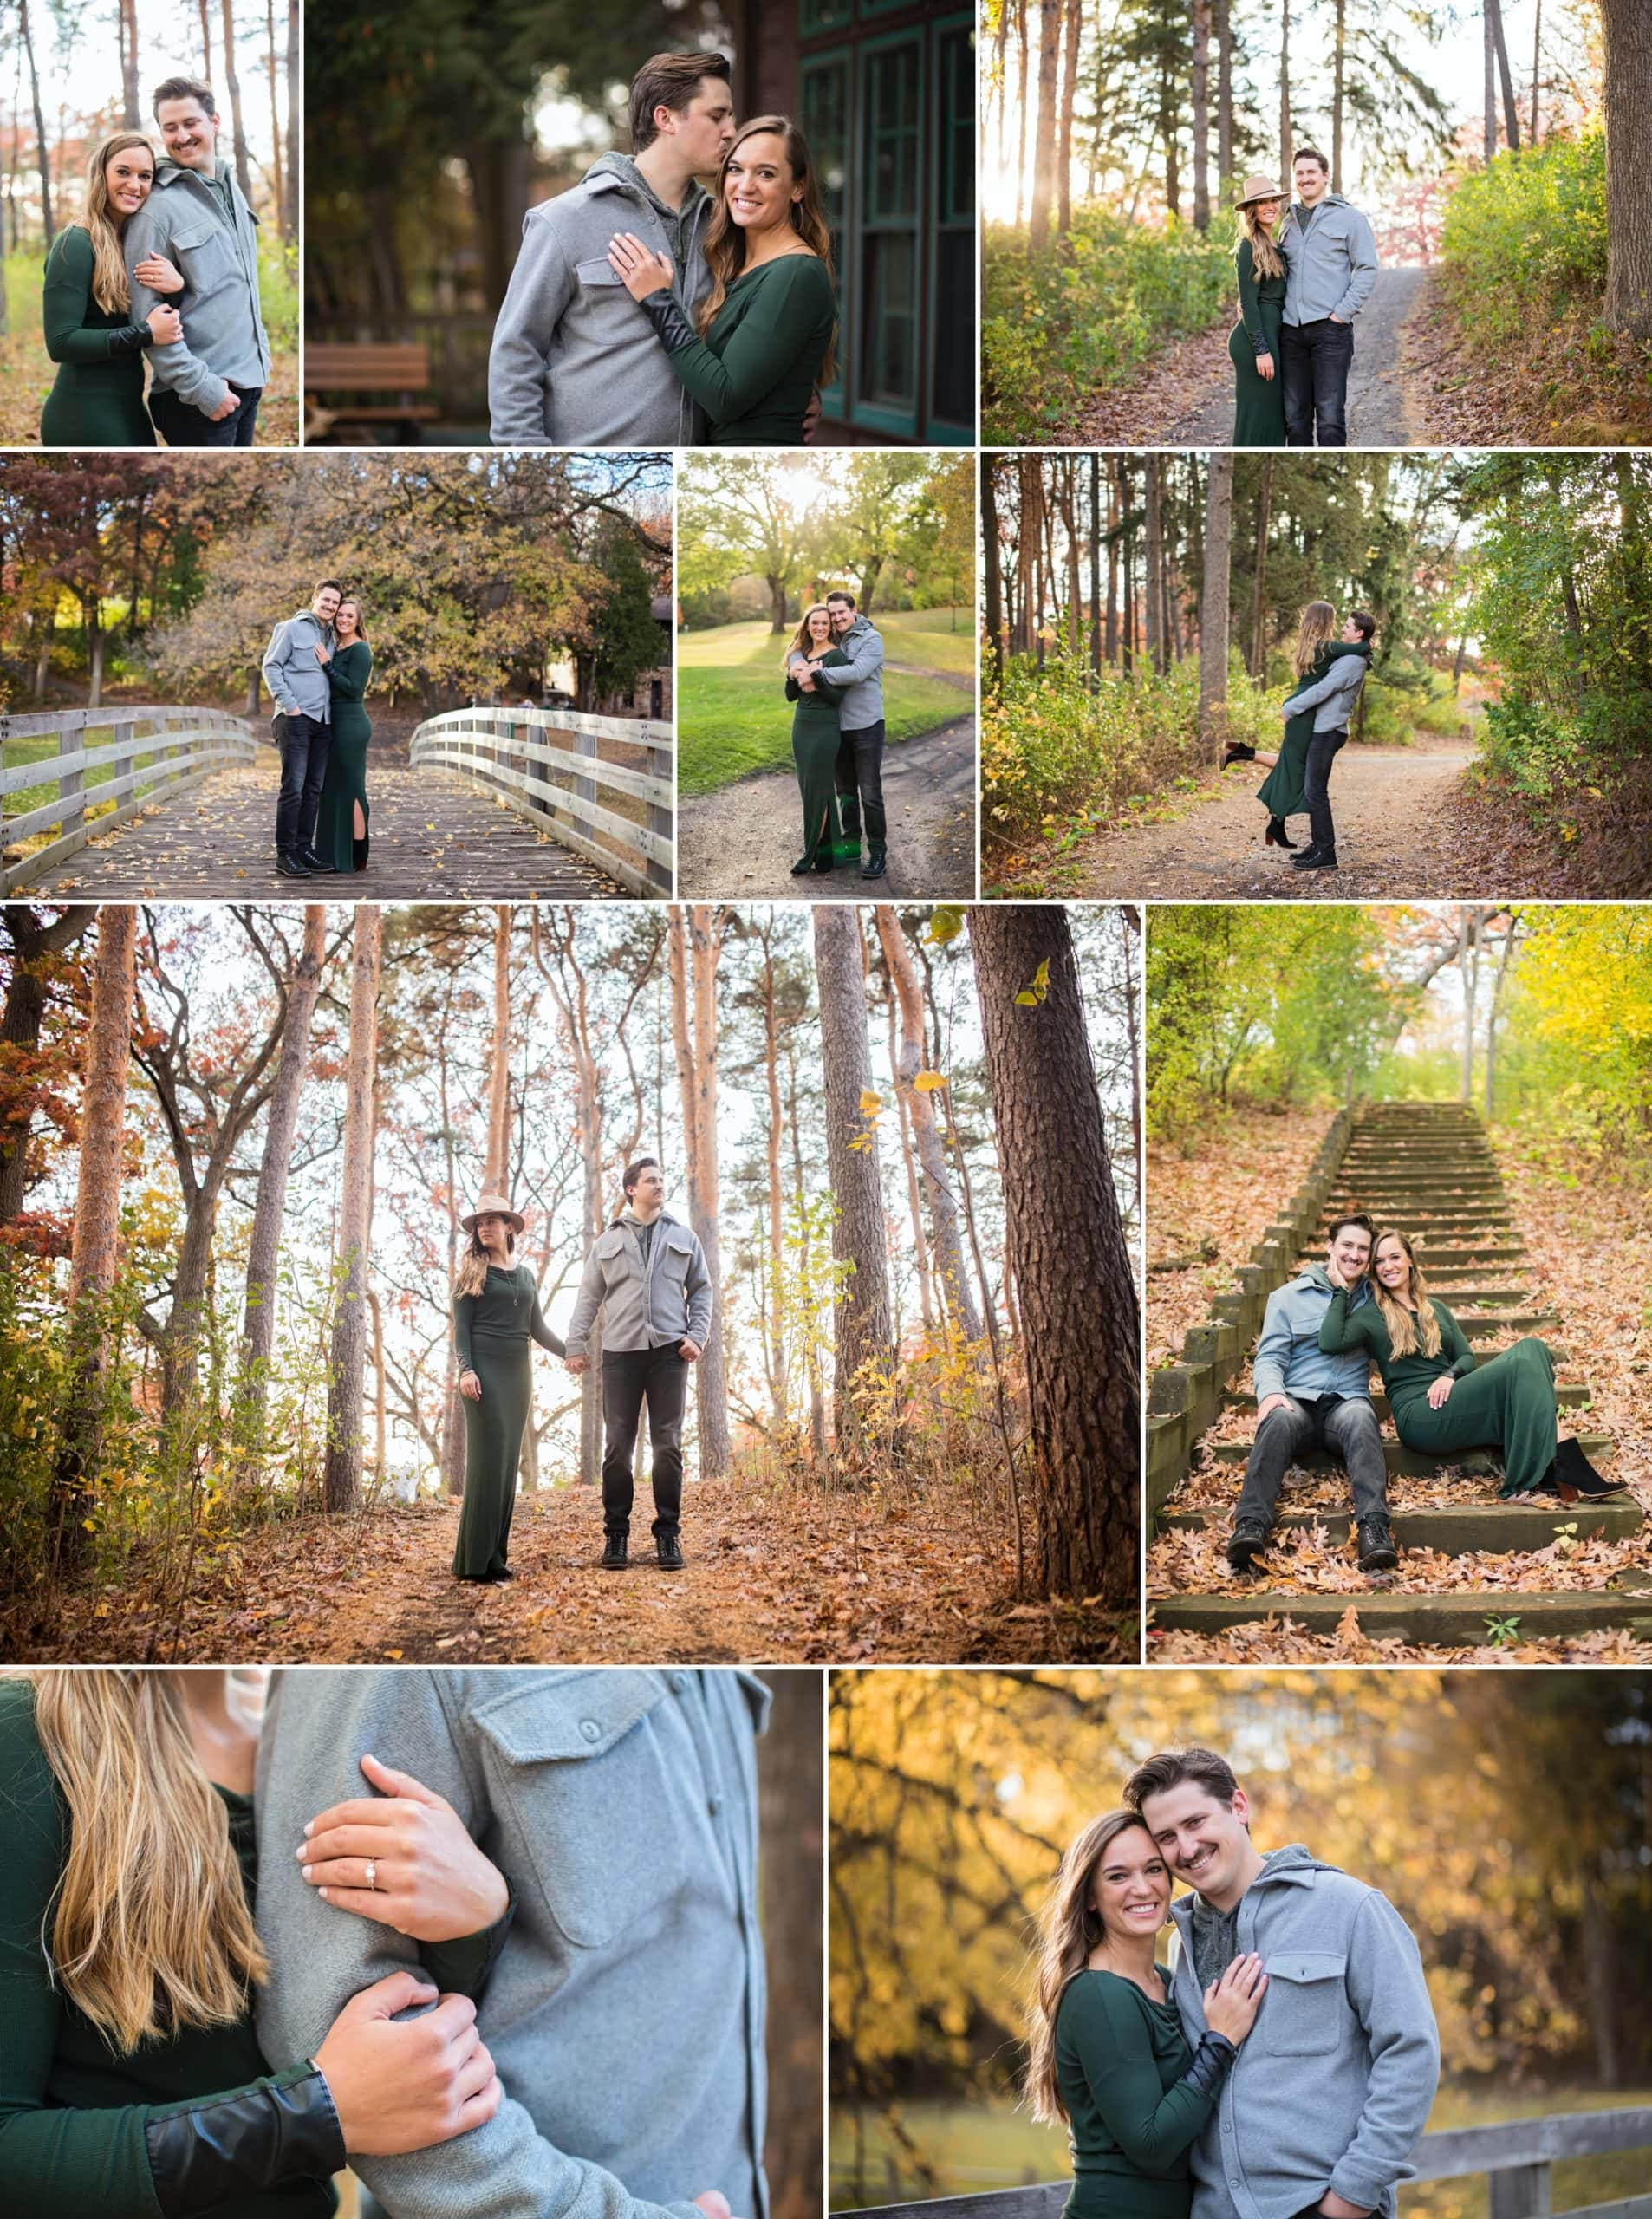 Engagement photography session at Theodore Wirth Park in Minneapolis, Minnesota.